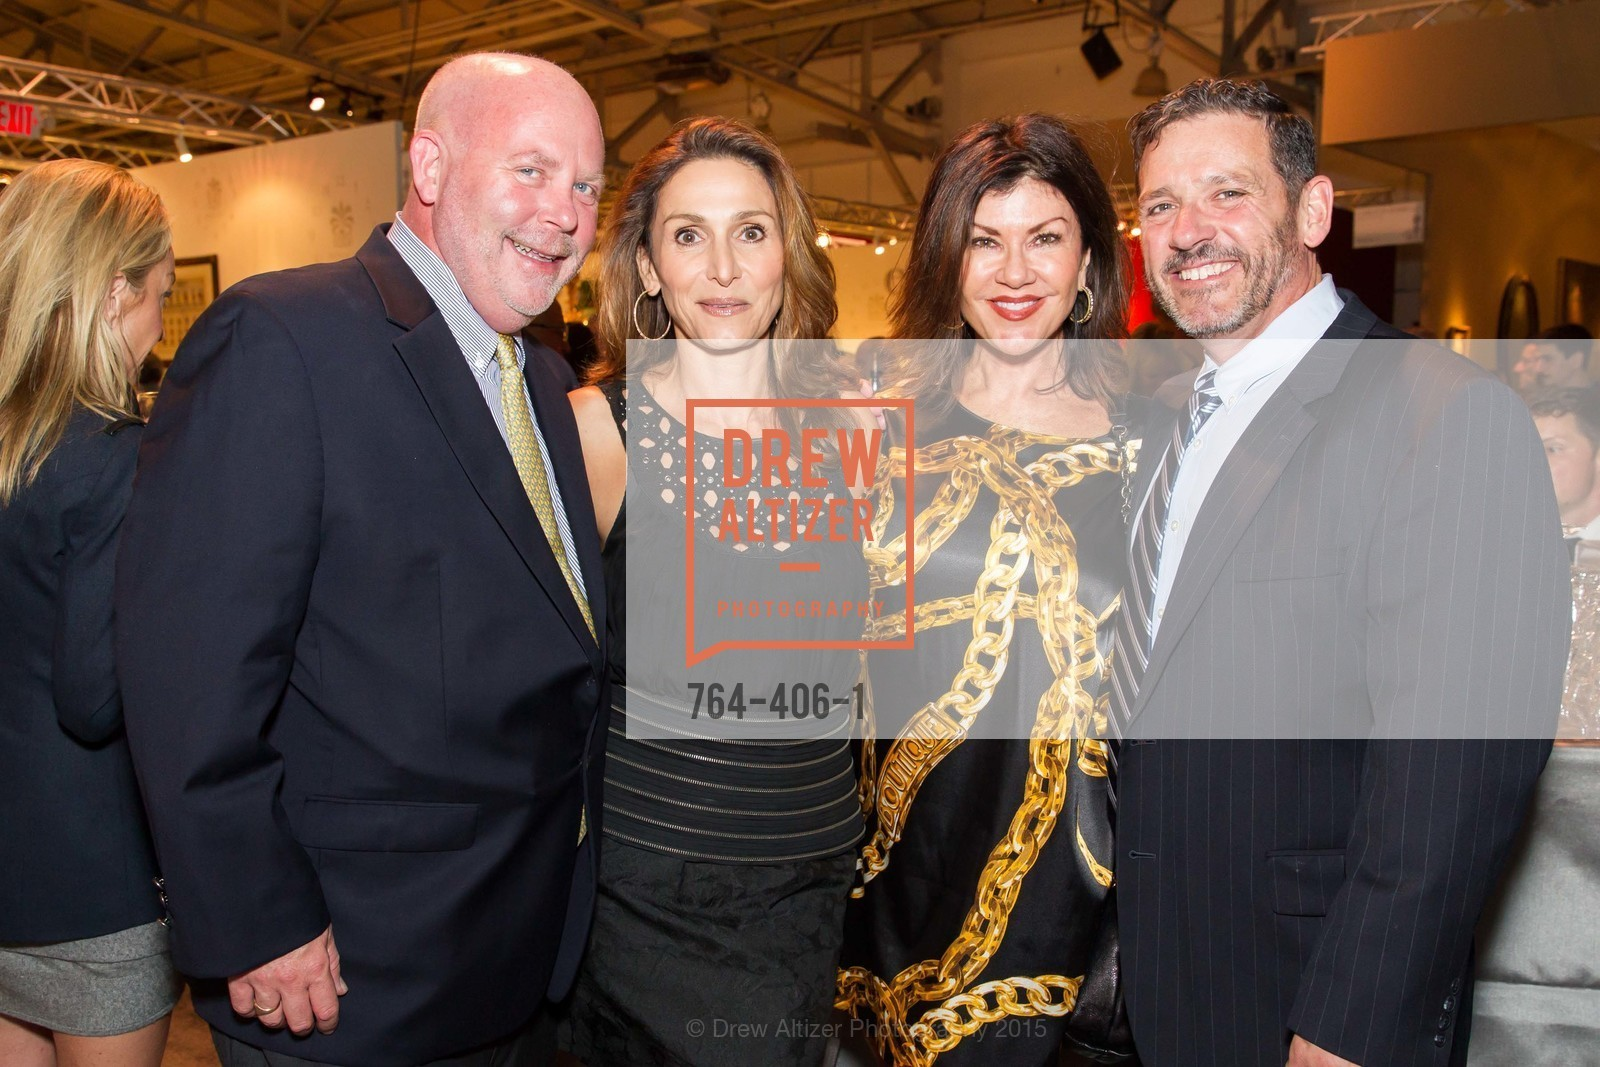 Paul Holm, Sabrina Higgs, DInae Yancey, Bruce Mahood, The San Francisco Fall Antiques Show, Festival Pavilion, Fort Mason, October 21st, 2015,Drew Altizer, Drew Altizer Photography, full-service agency, private events, San Francisco photographer, photographer california